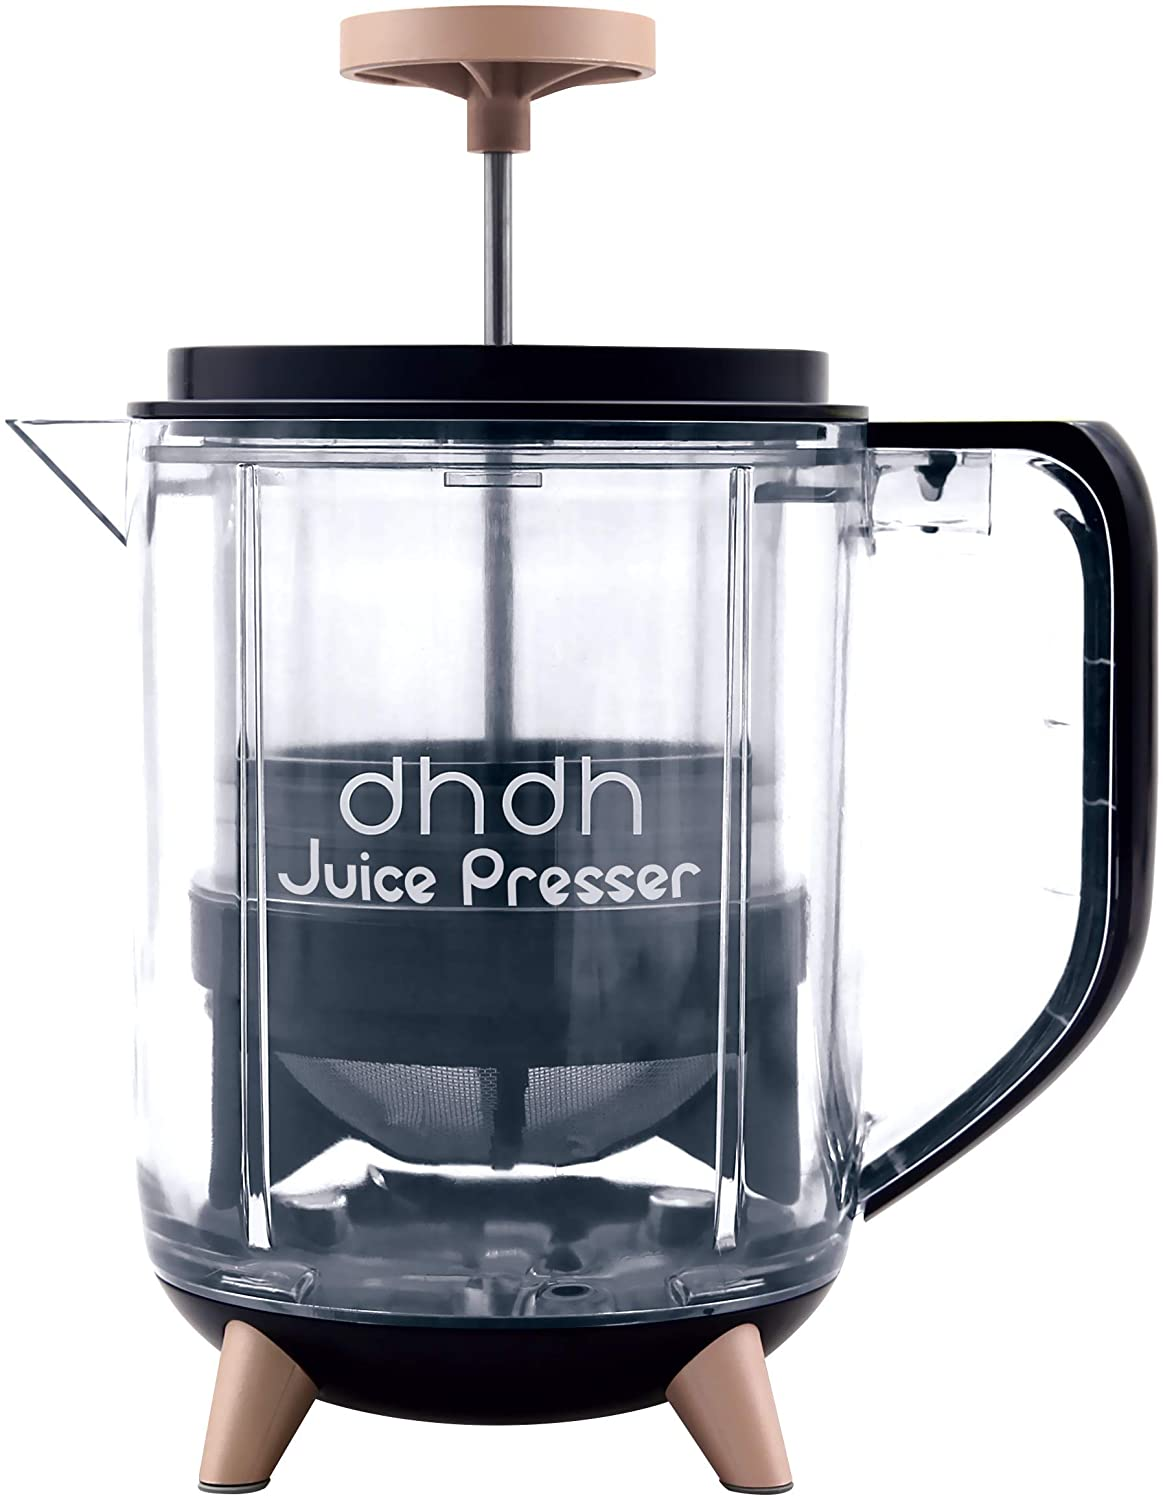 dhdh Juice Presser - Easy Manual Green Juice Extractor from Pulp or Blend with Adjustable Strainers